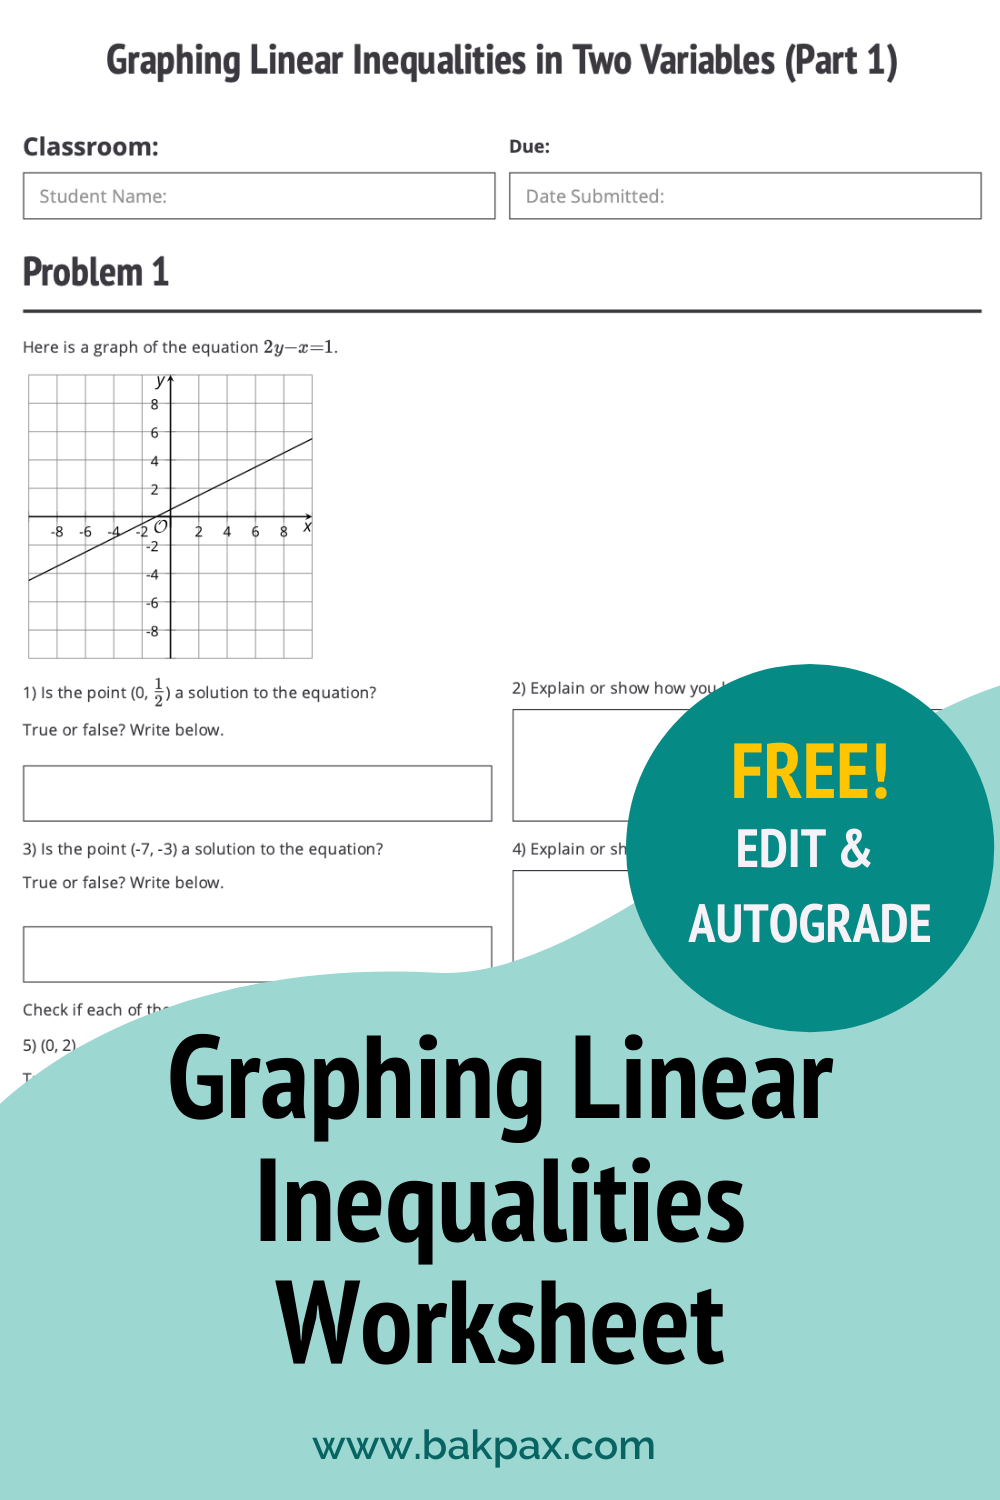 Free Graphing Linear Inequalities in Two Variables